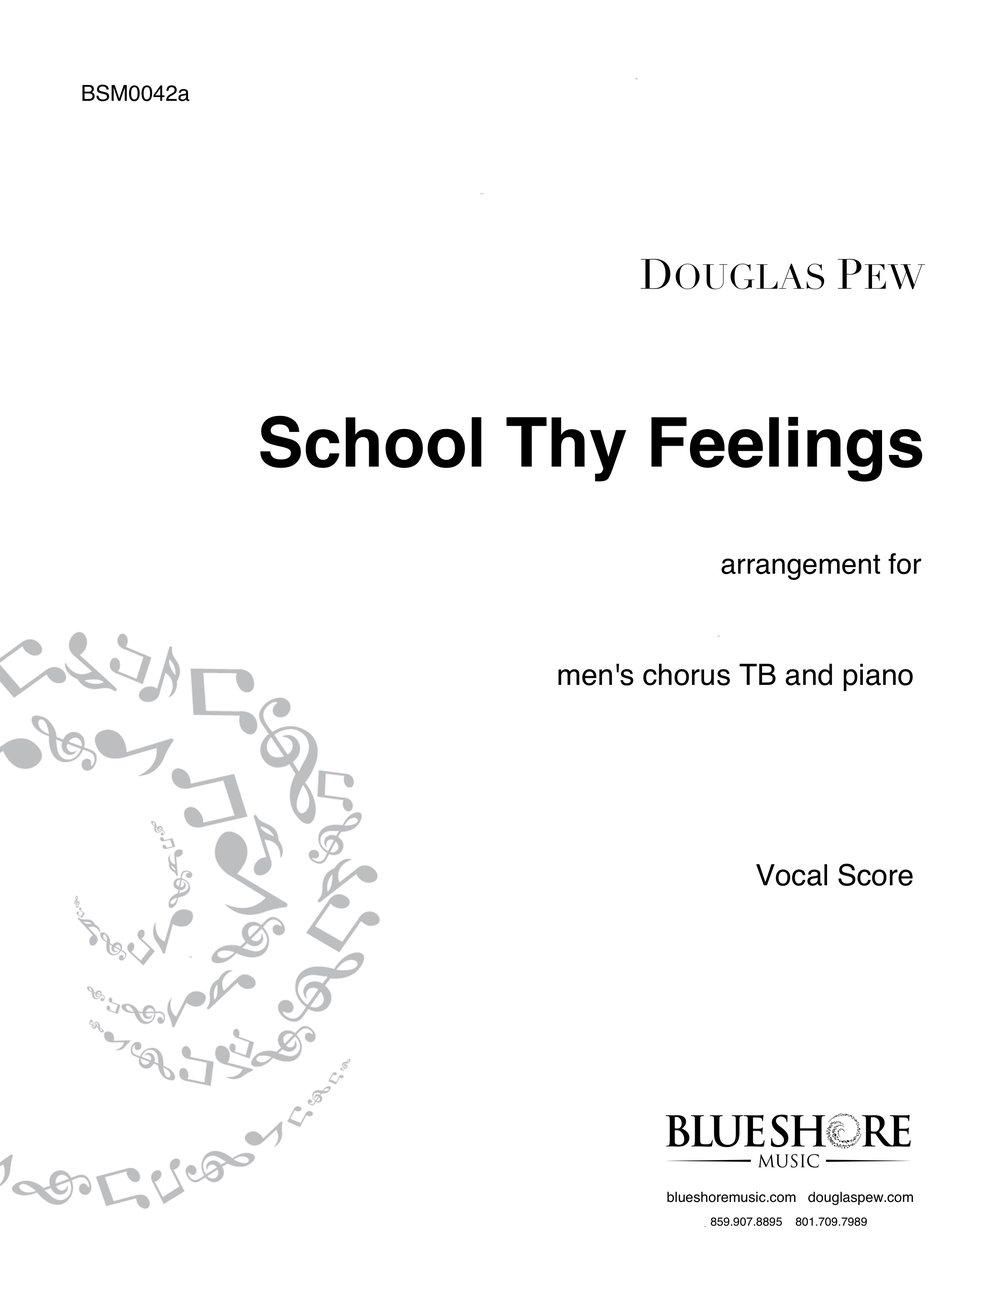 School Thy Feelings, for Men's Choir TB and Piano